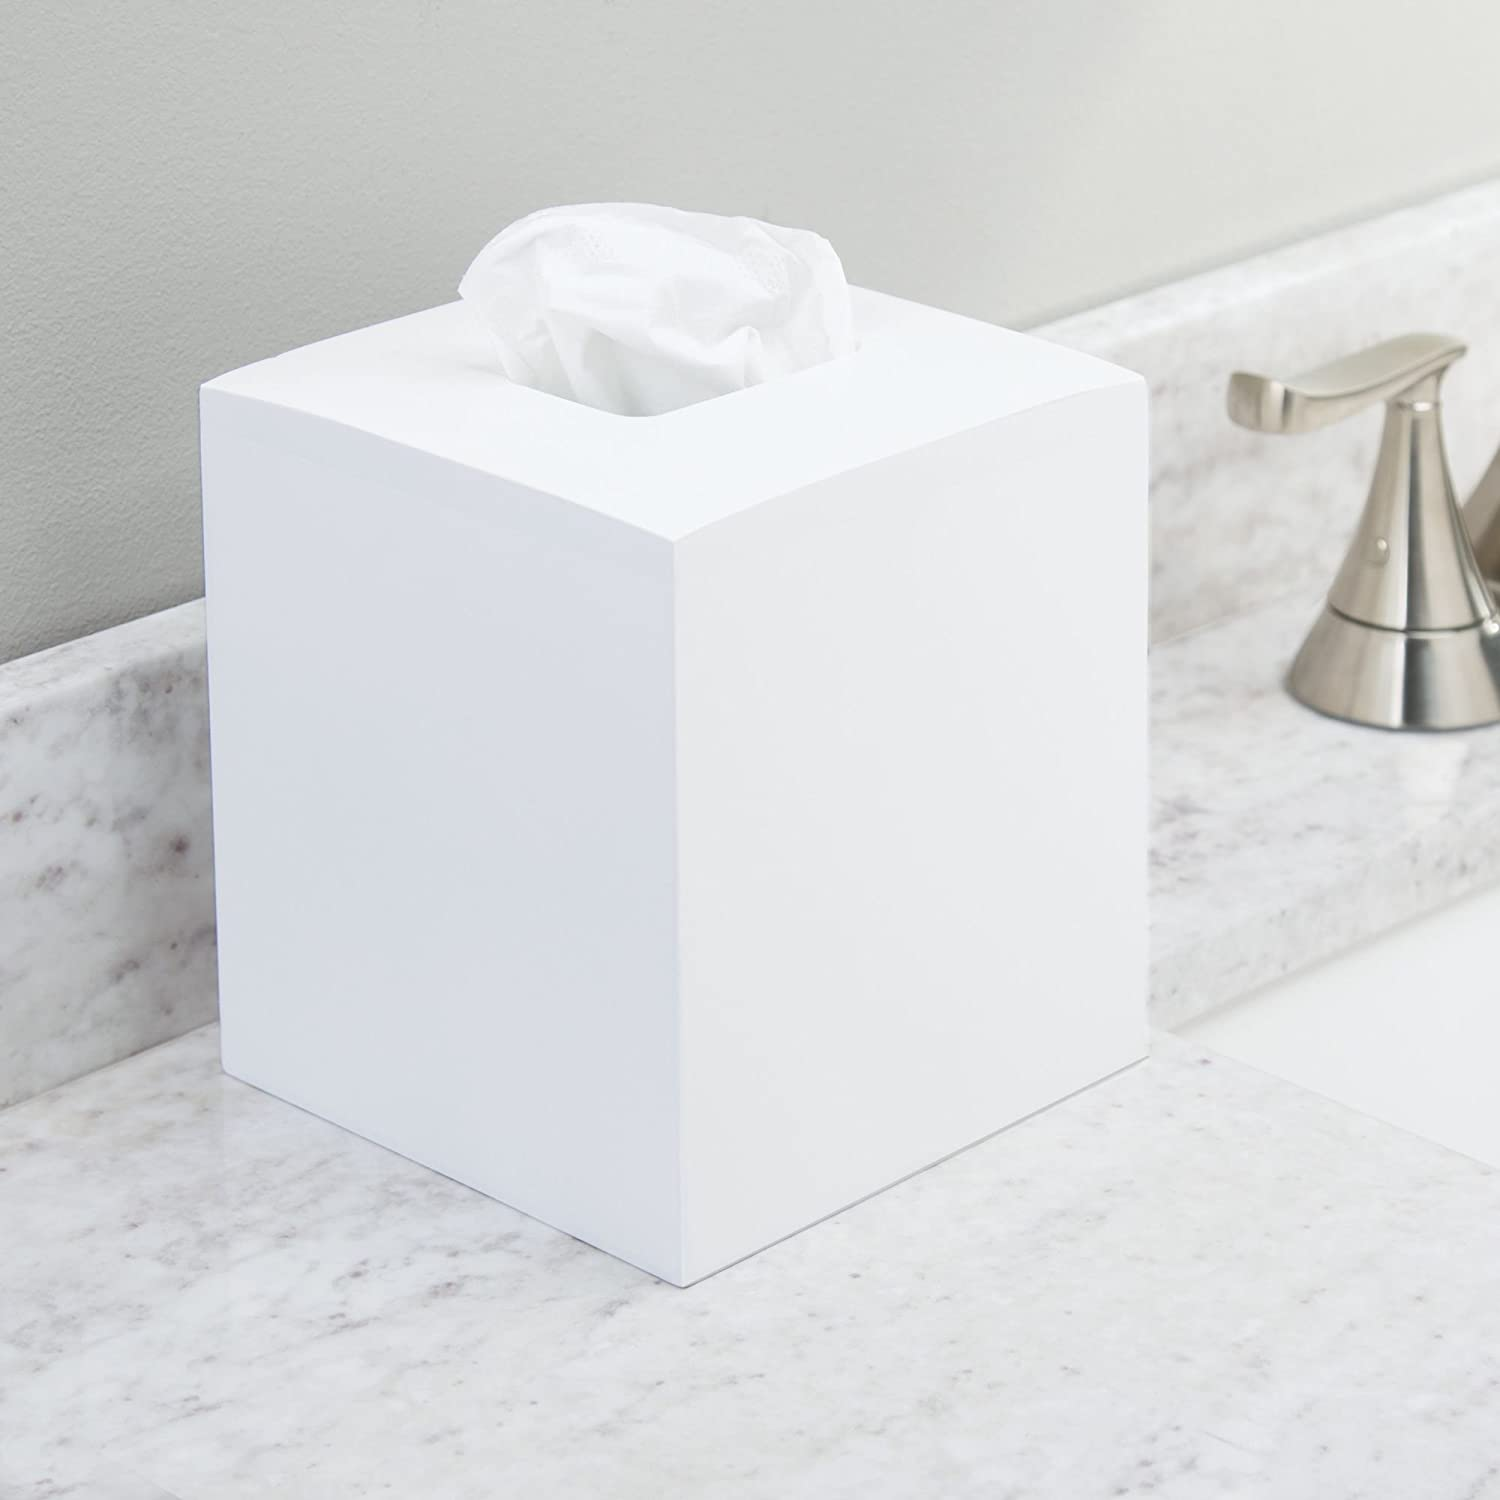 Night Stands mDesign Square Bamboo Wood Facial Tissue Paper Box Cover Holder for Bathroom Vanity Counter Tops White MetroDecor Home Office Desks Tables Bedroom Dressers